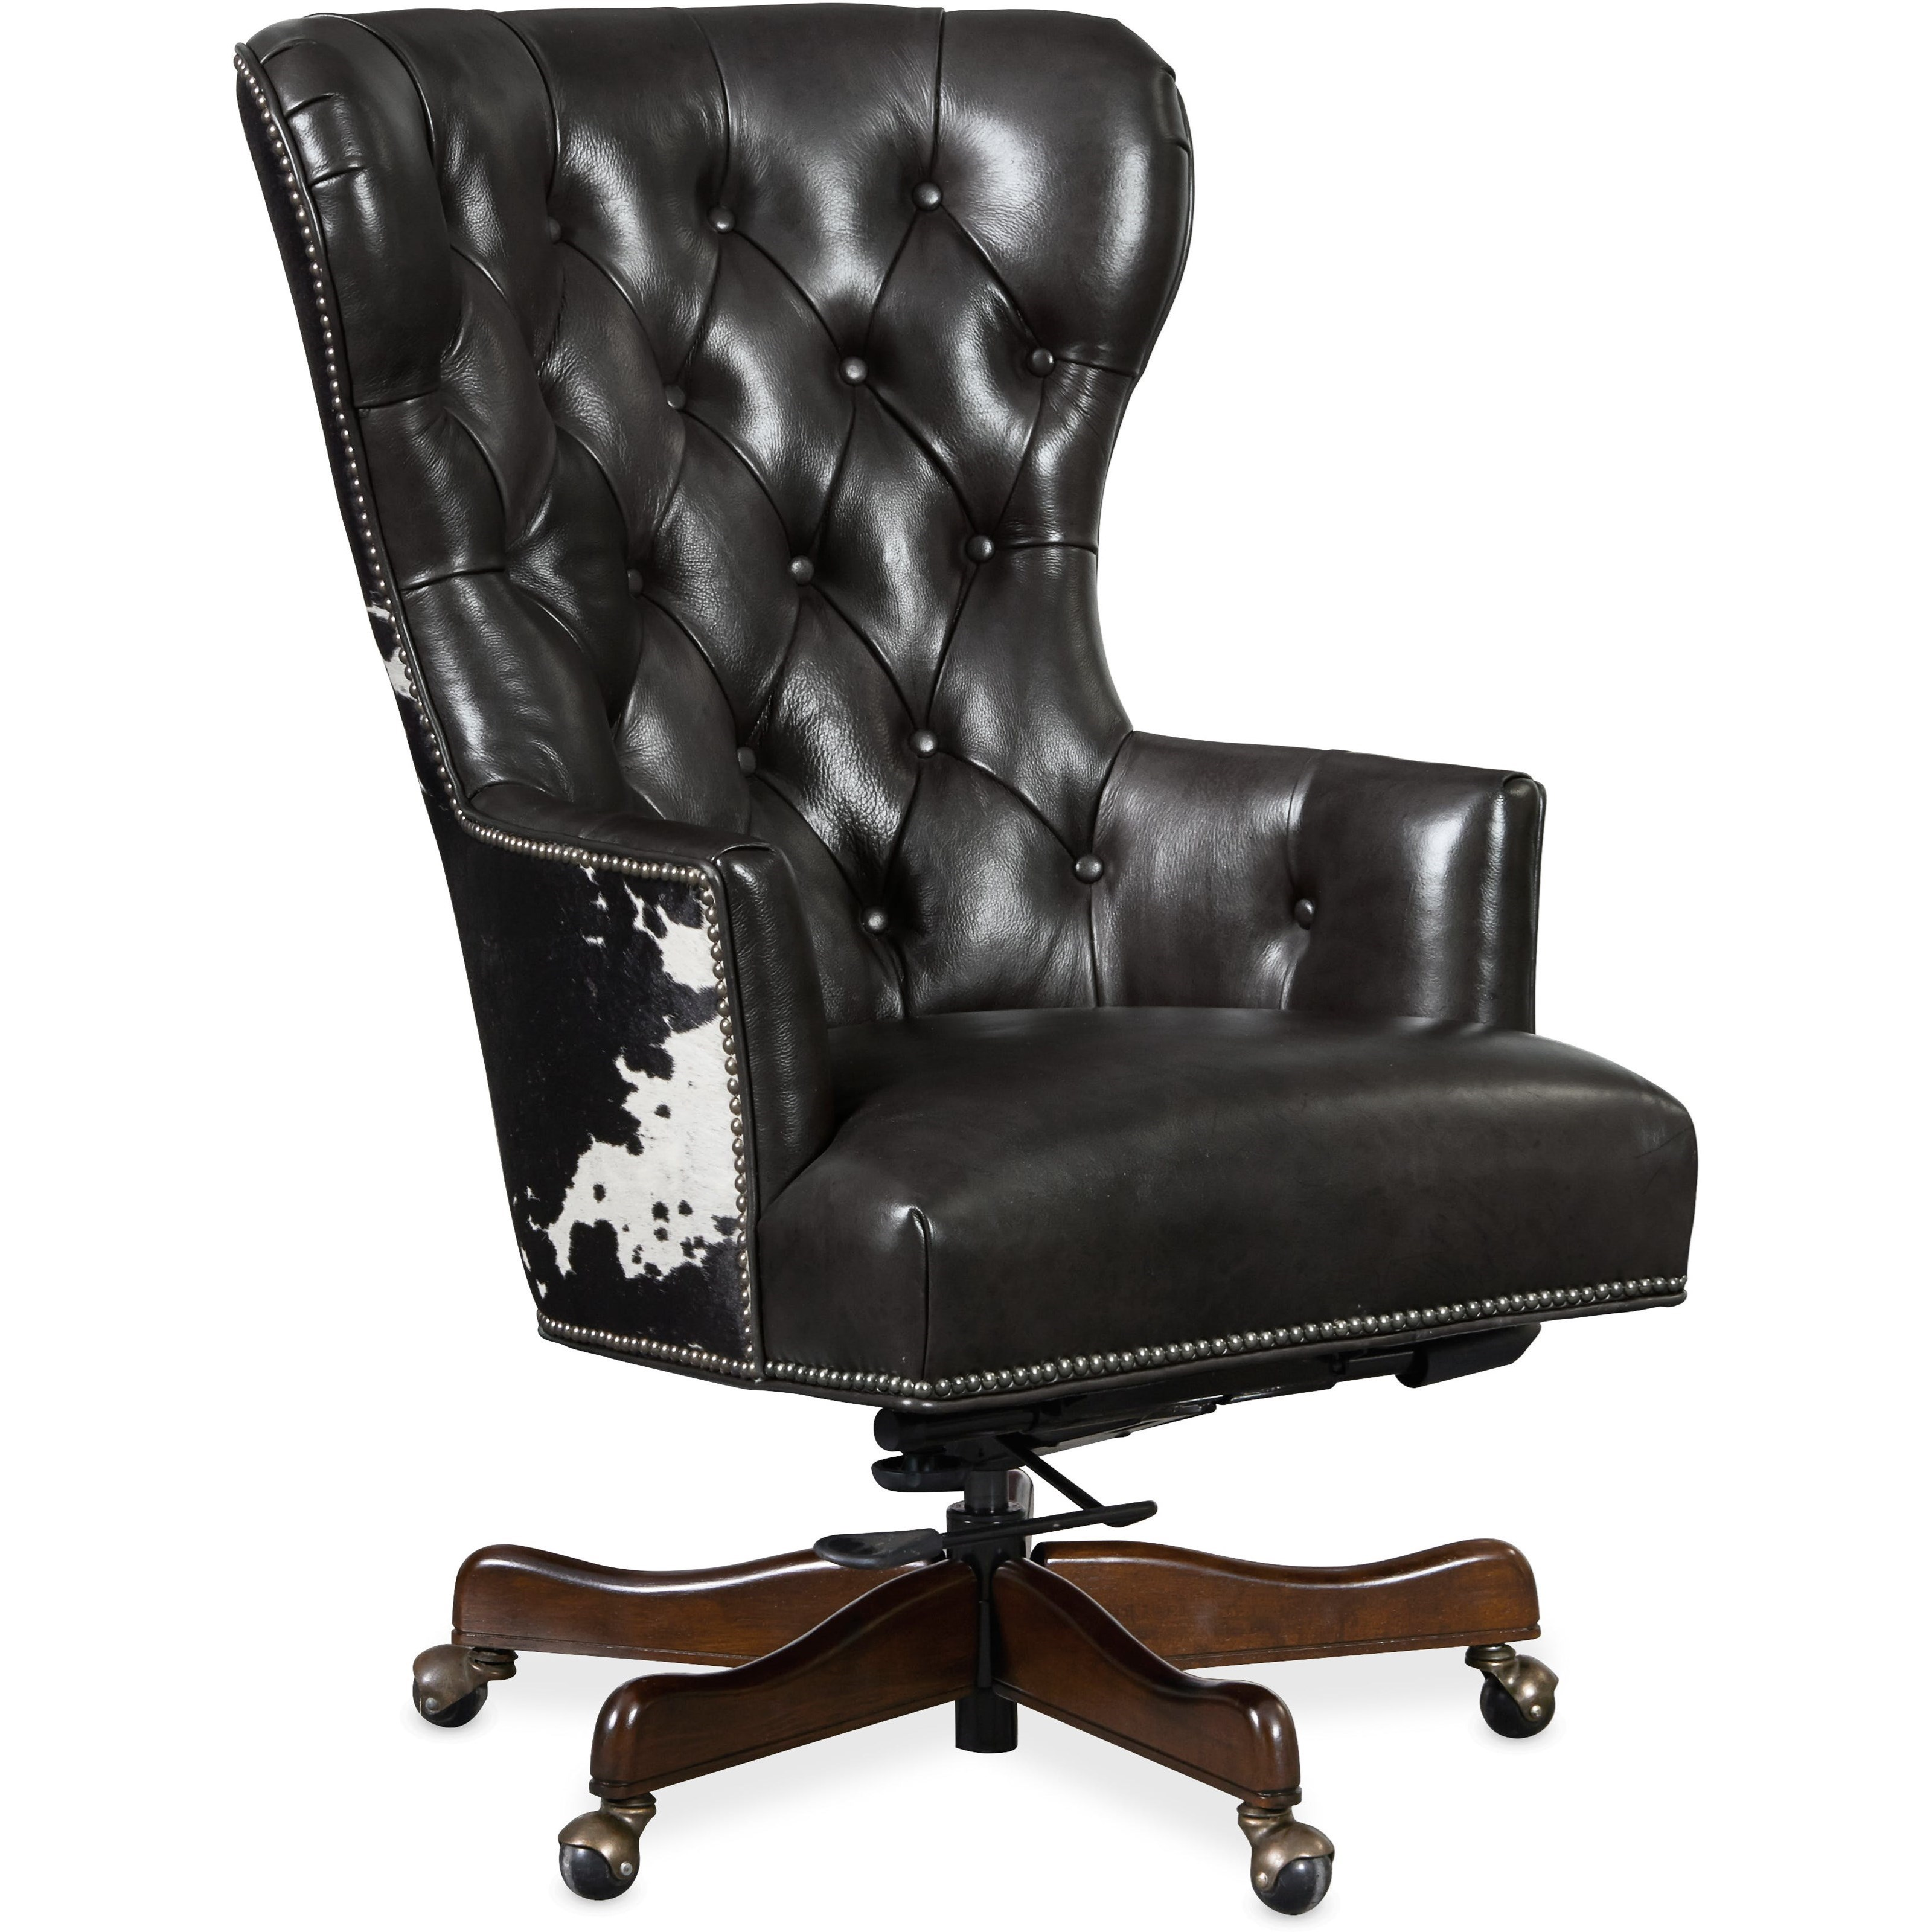 Executive Seating Home Office Chair by Hooker Furniture at Miller Waldrop Furniture and Decor